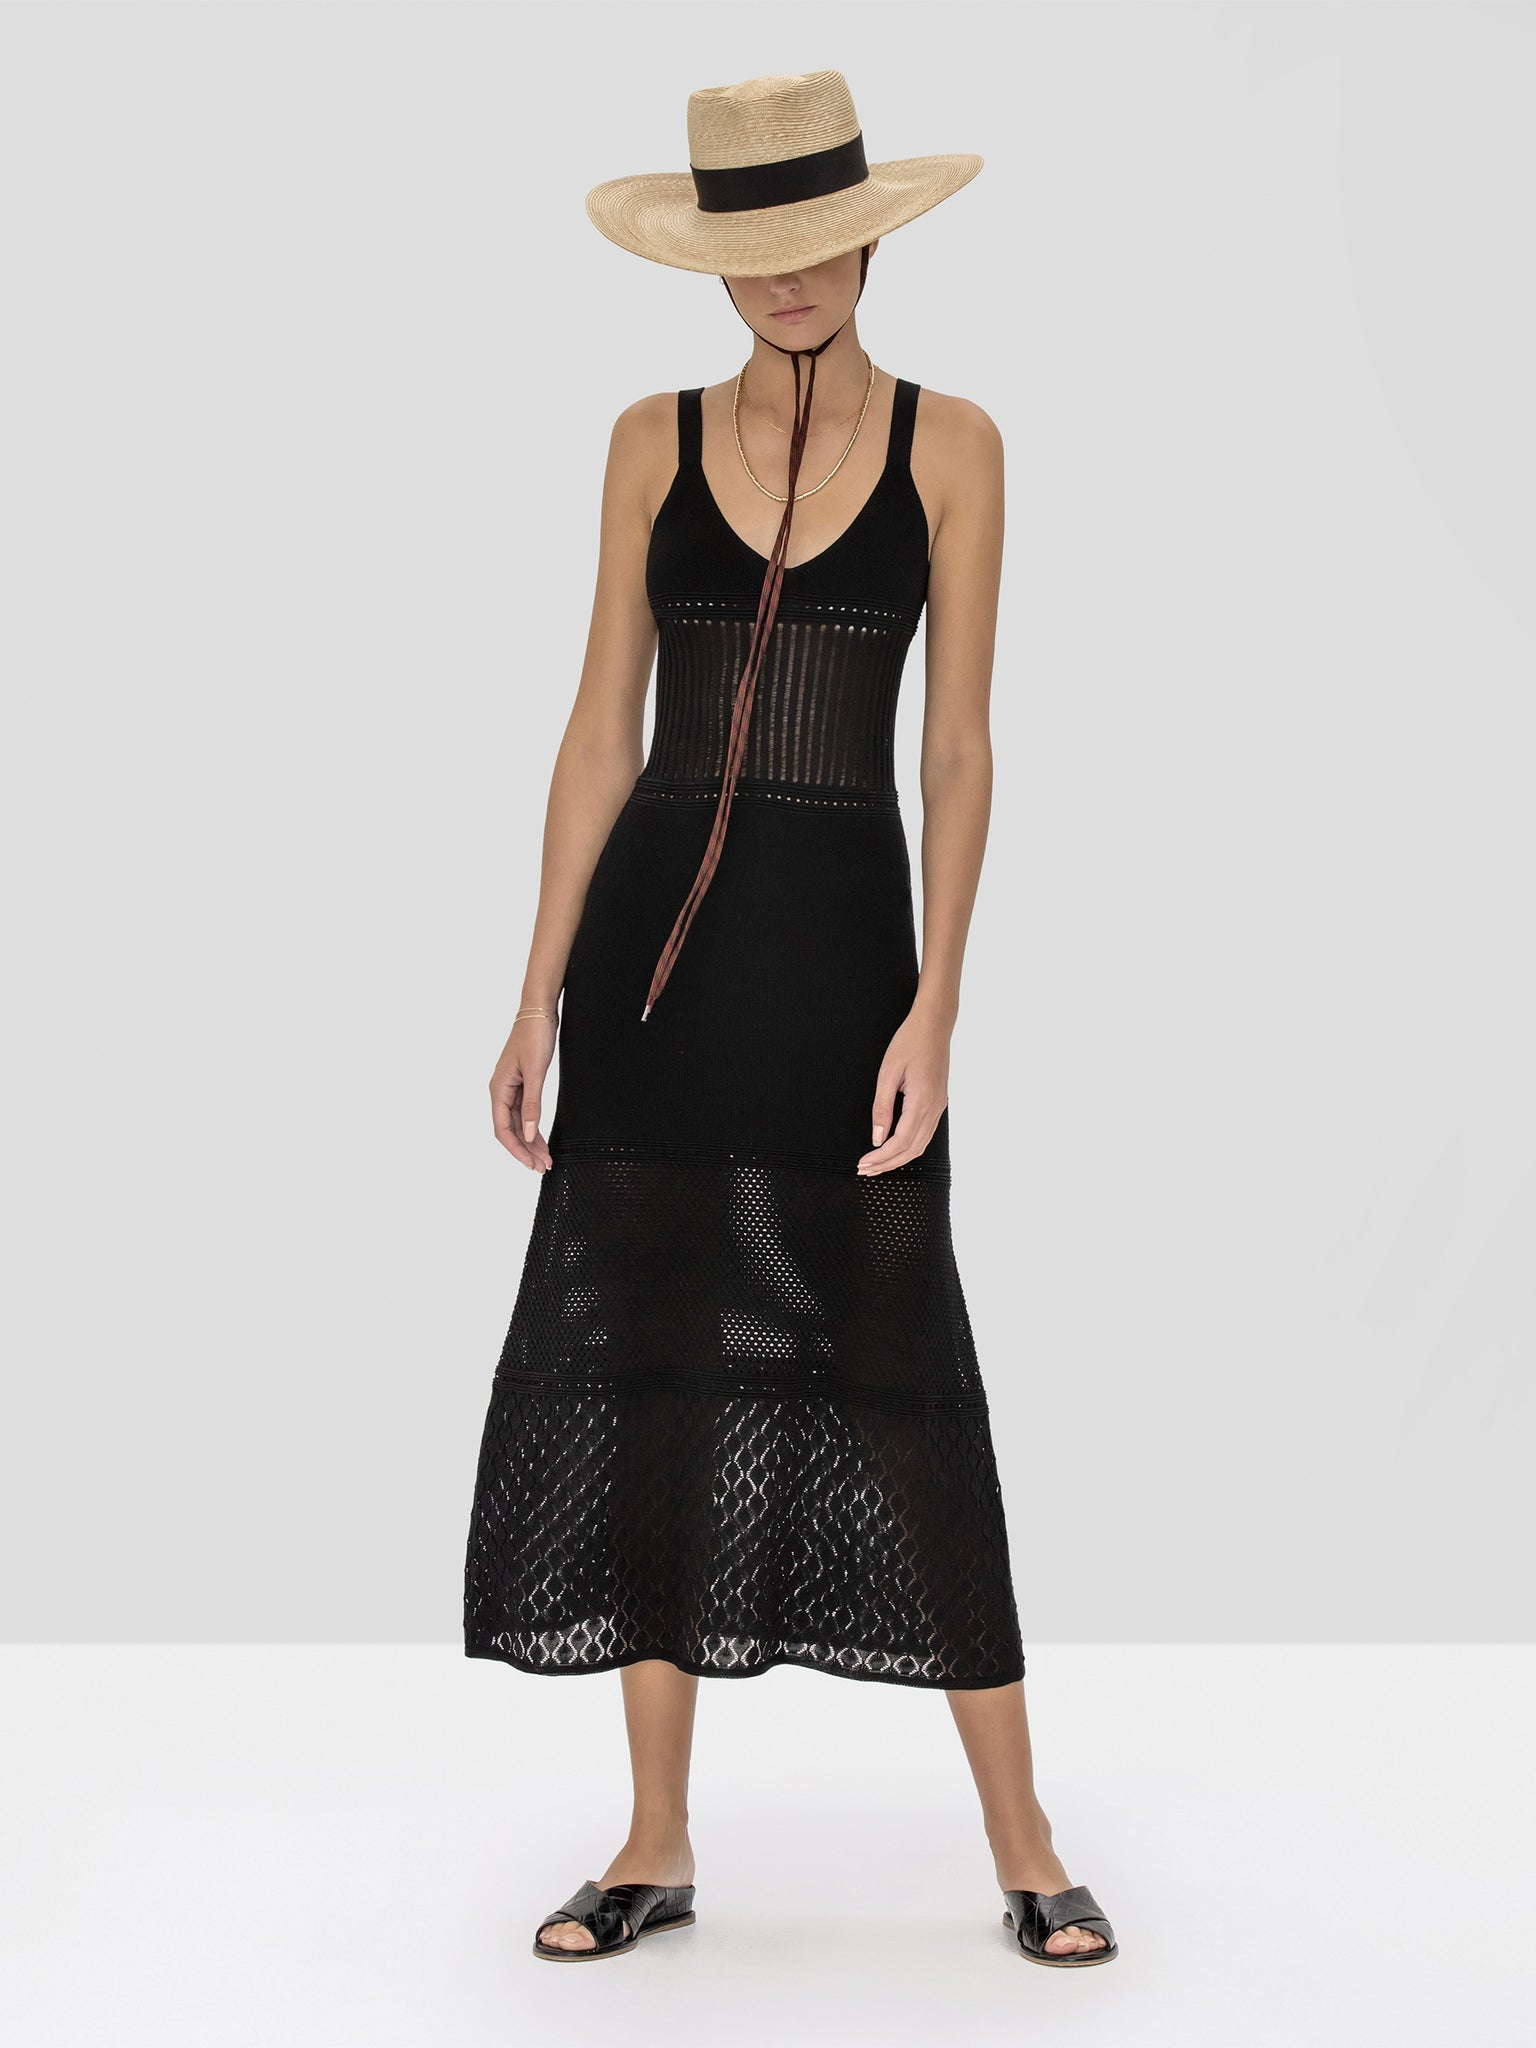 Alexis Rozanna Dress in Black from Spring Summer 2020